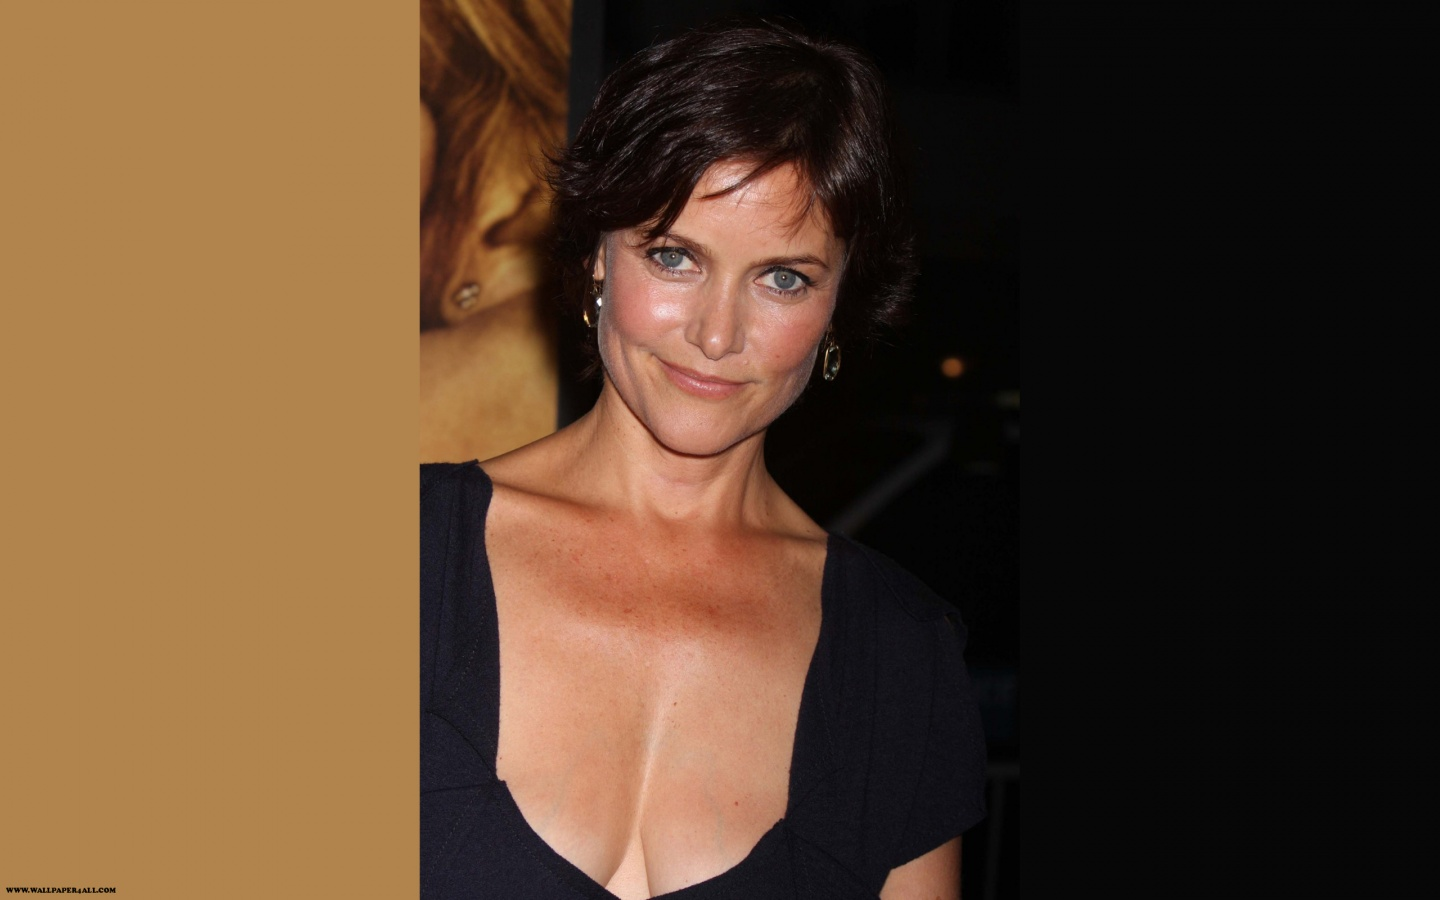 the hottest world models carey lowell james bond girl biography. Black Bedroom Furniture Sets. Home Design Ideas